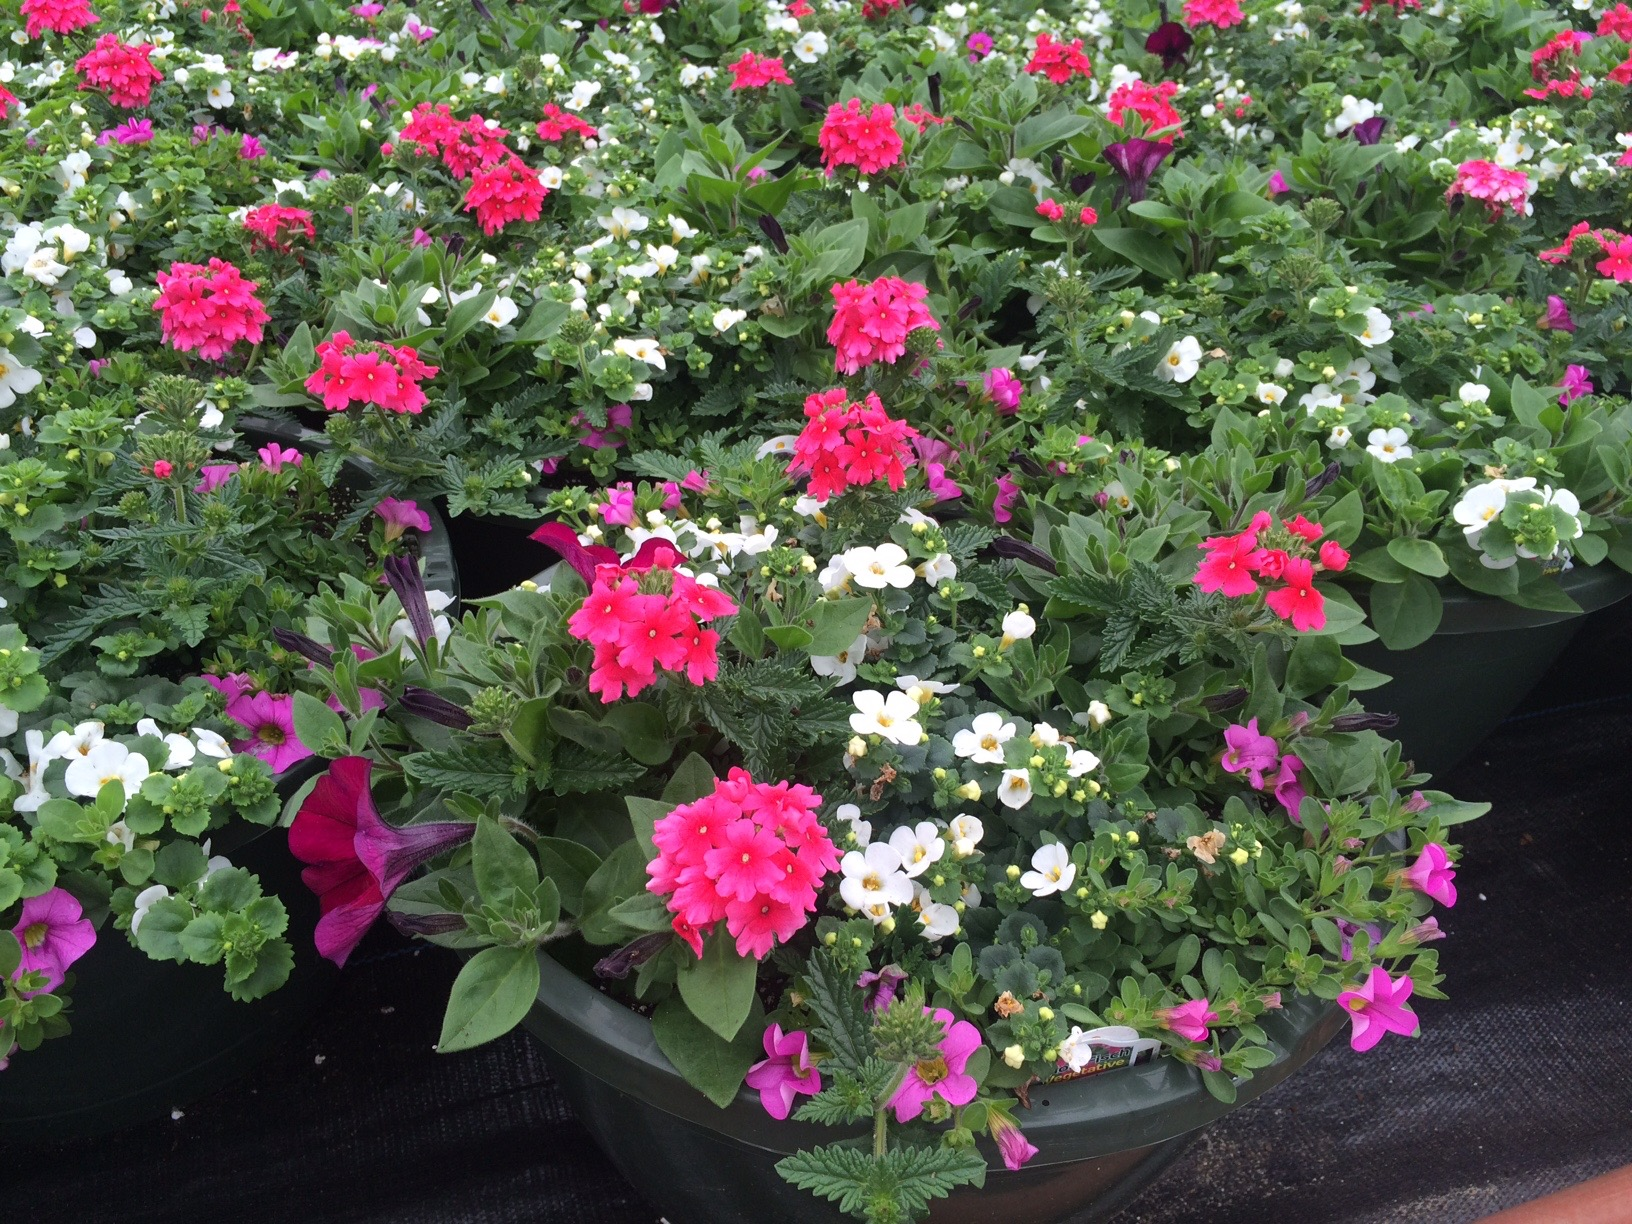 Annuals container gardening popel landscaping and design llc for many gardeners annuals are a go to solution for many garden needs these flowers are a quick way to fill empty spots in flowerbeds and early blooming izmirmasajfo